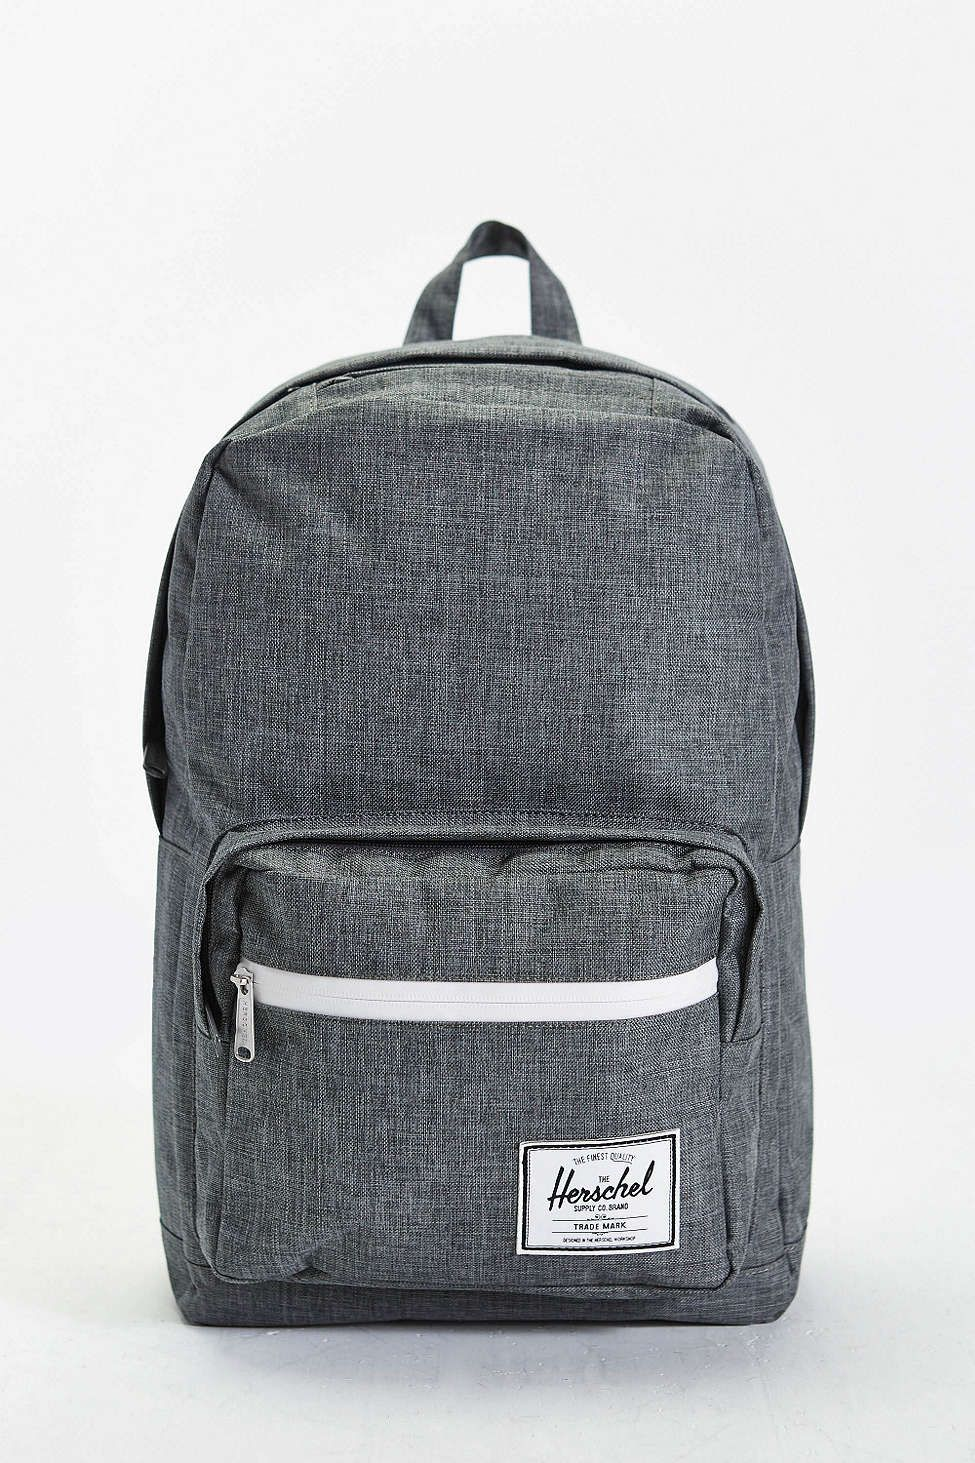 Herschel Supply Co. Pop Quiz Charcoal Cross-Stitch Backpack  efb2d2031b5c1